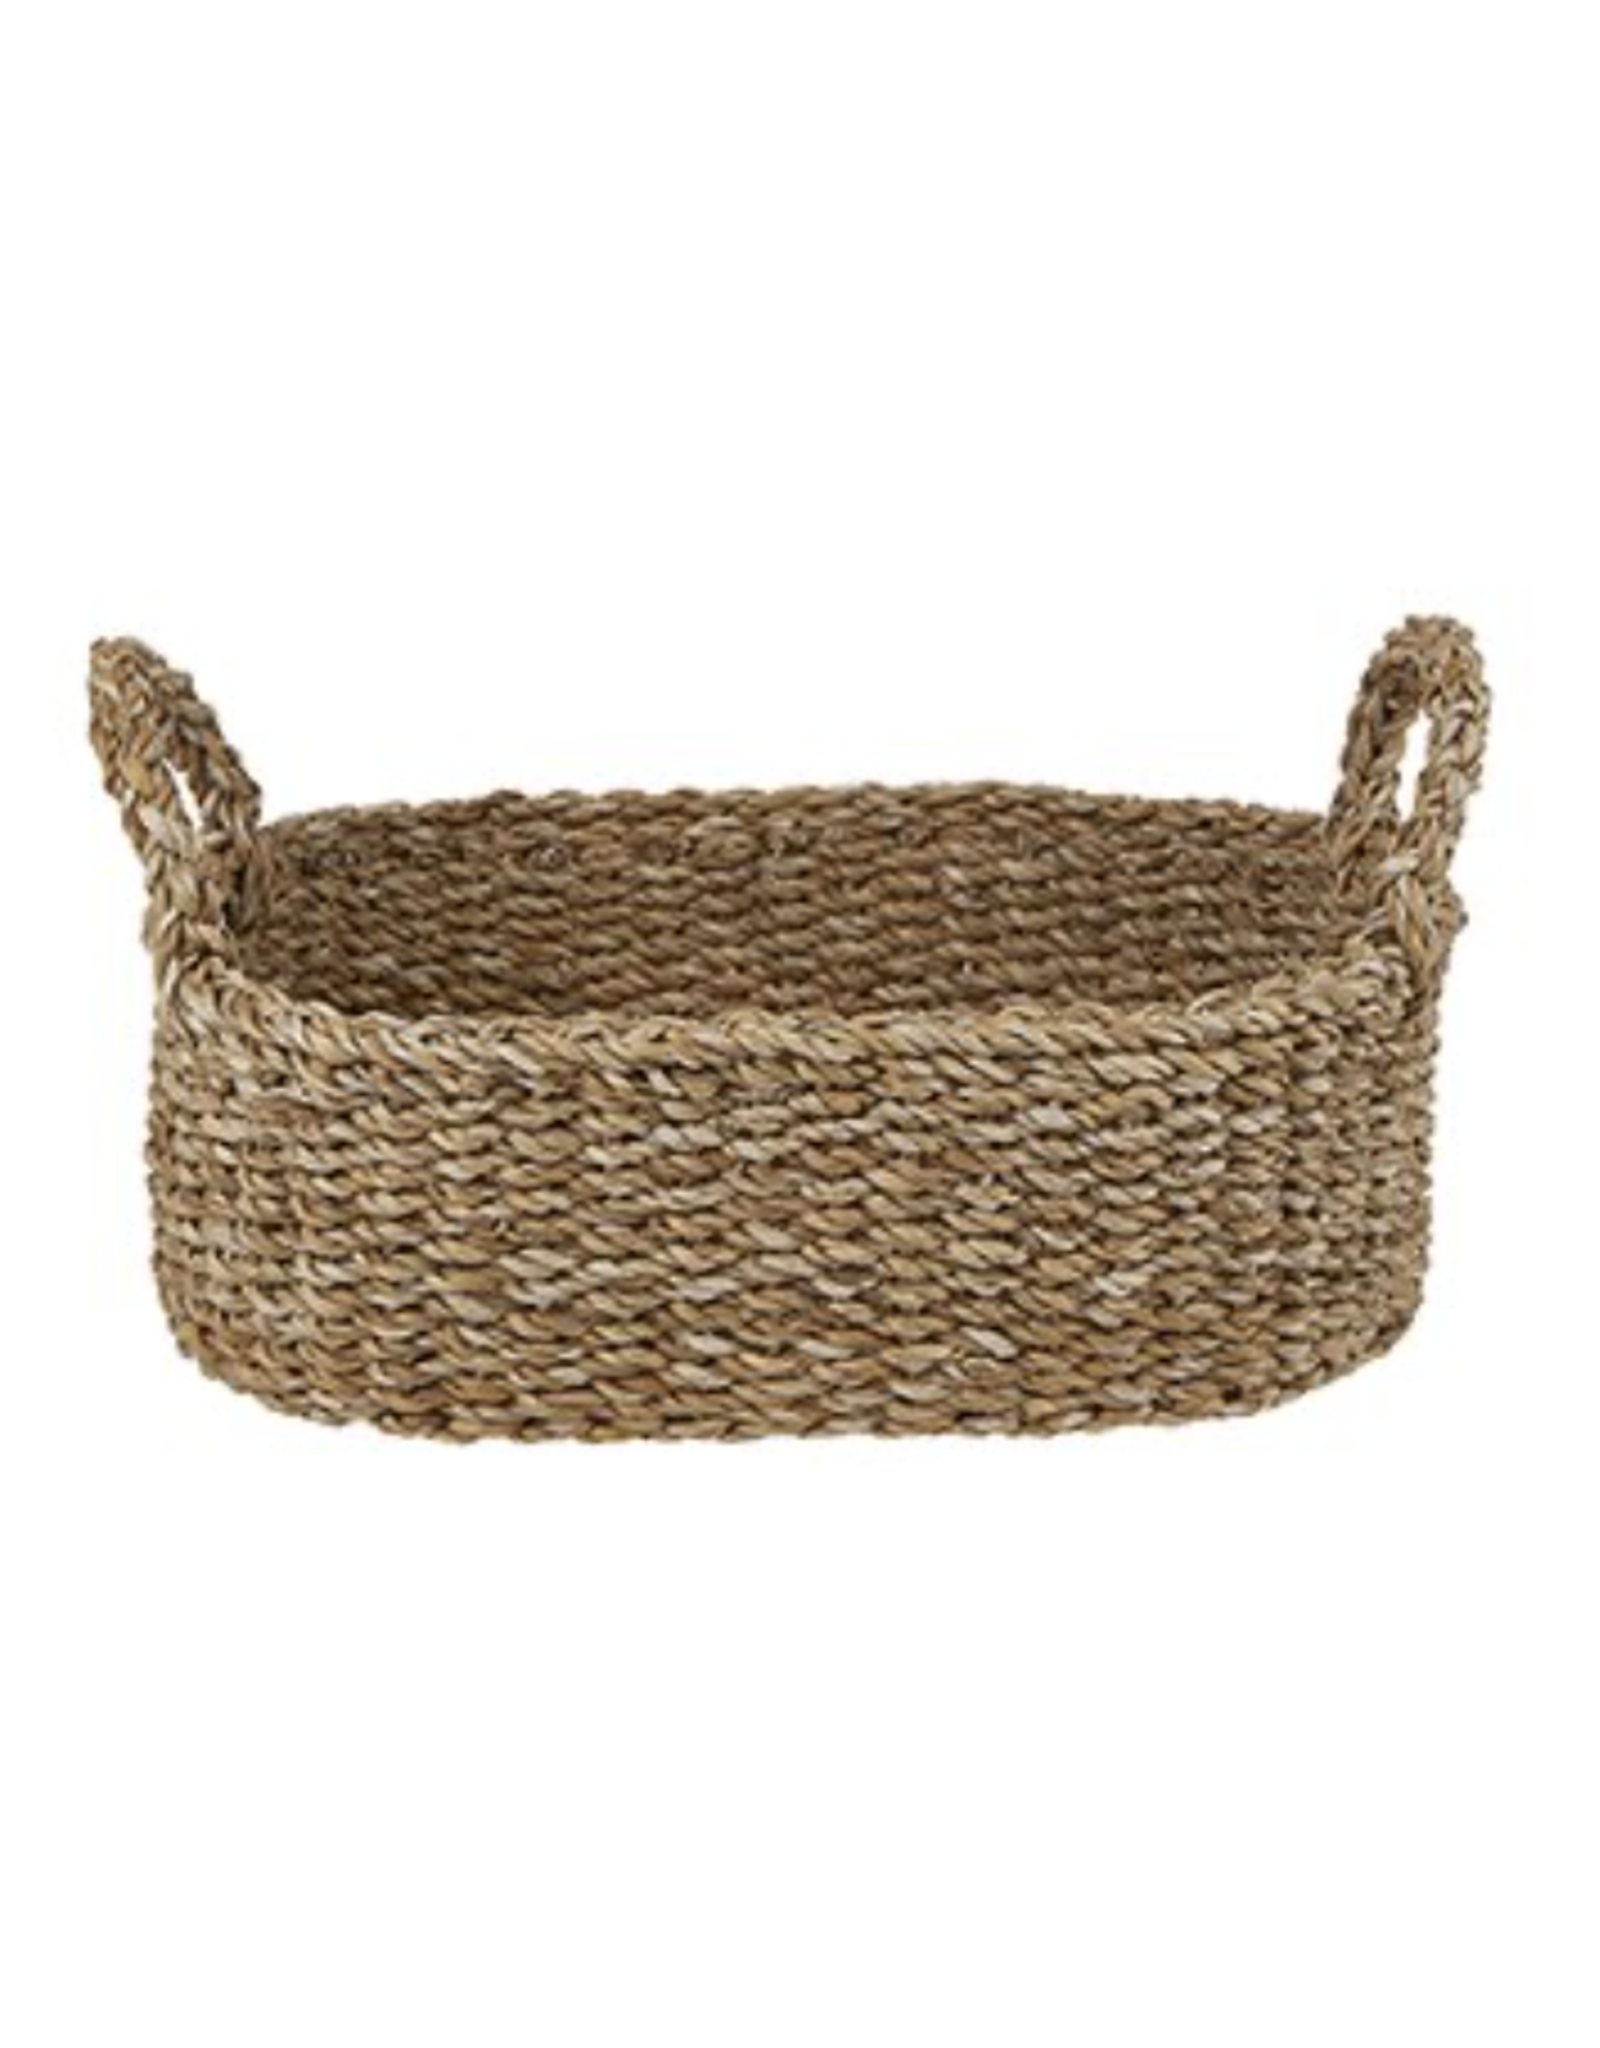 Creative Brands Large Seagrass Oval Basket